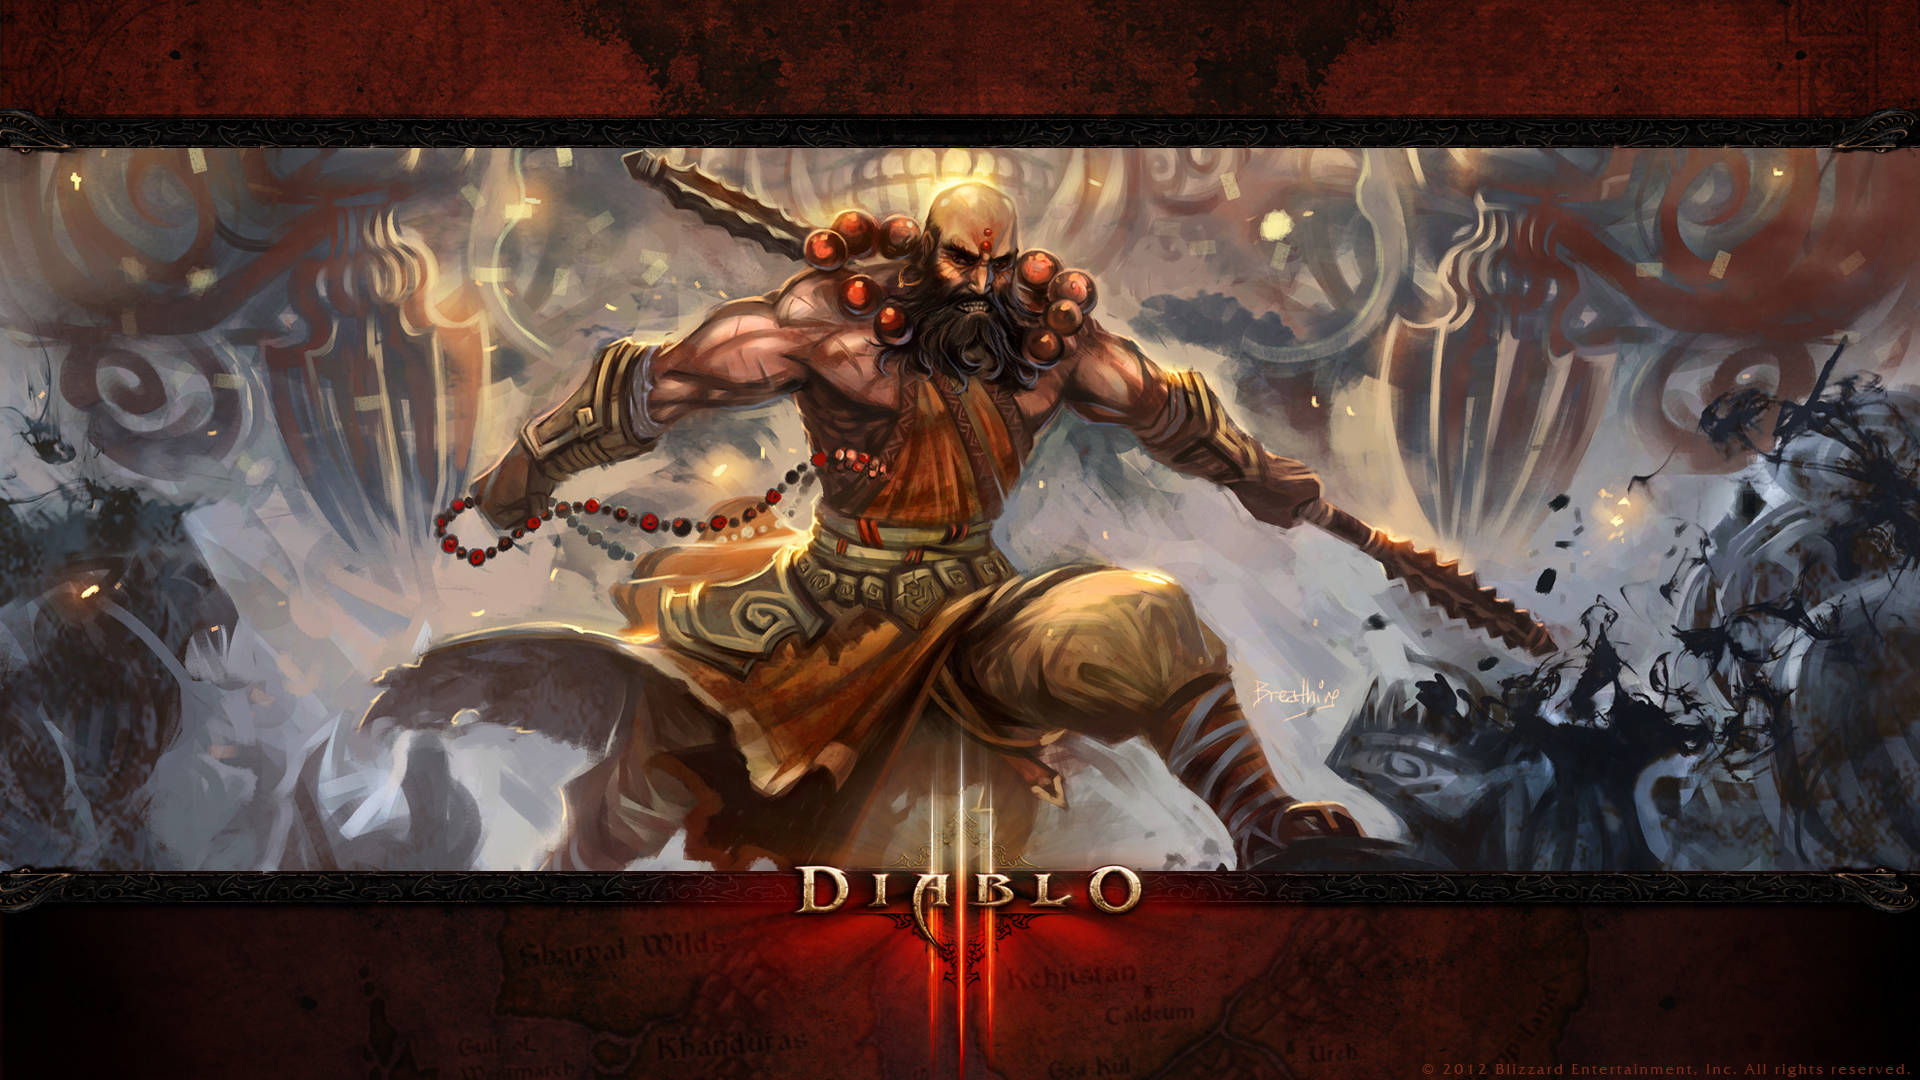 Paladin Diablo 3 Wallpaper